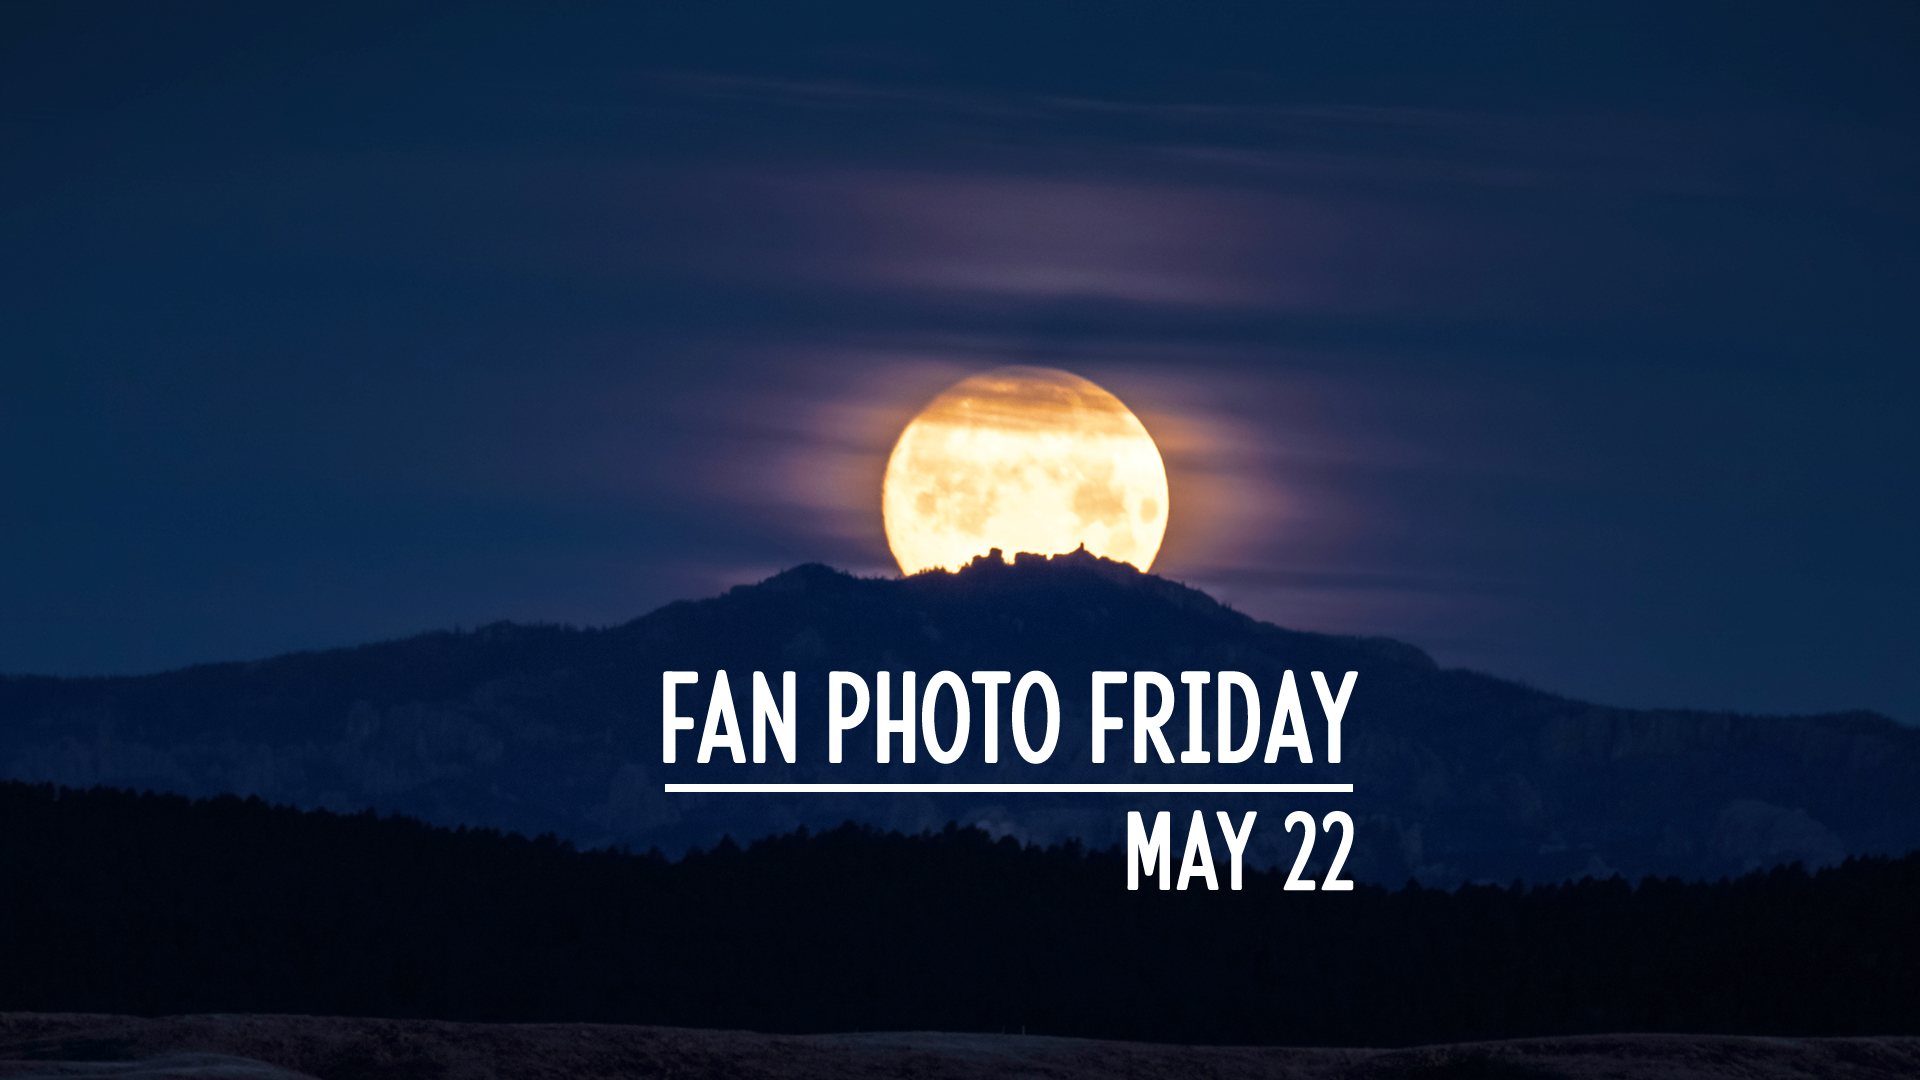 Fan Photo Friday | May 22, 2020